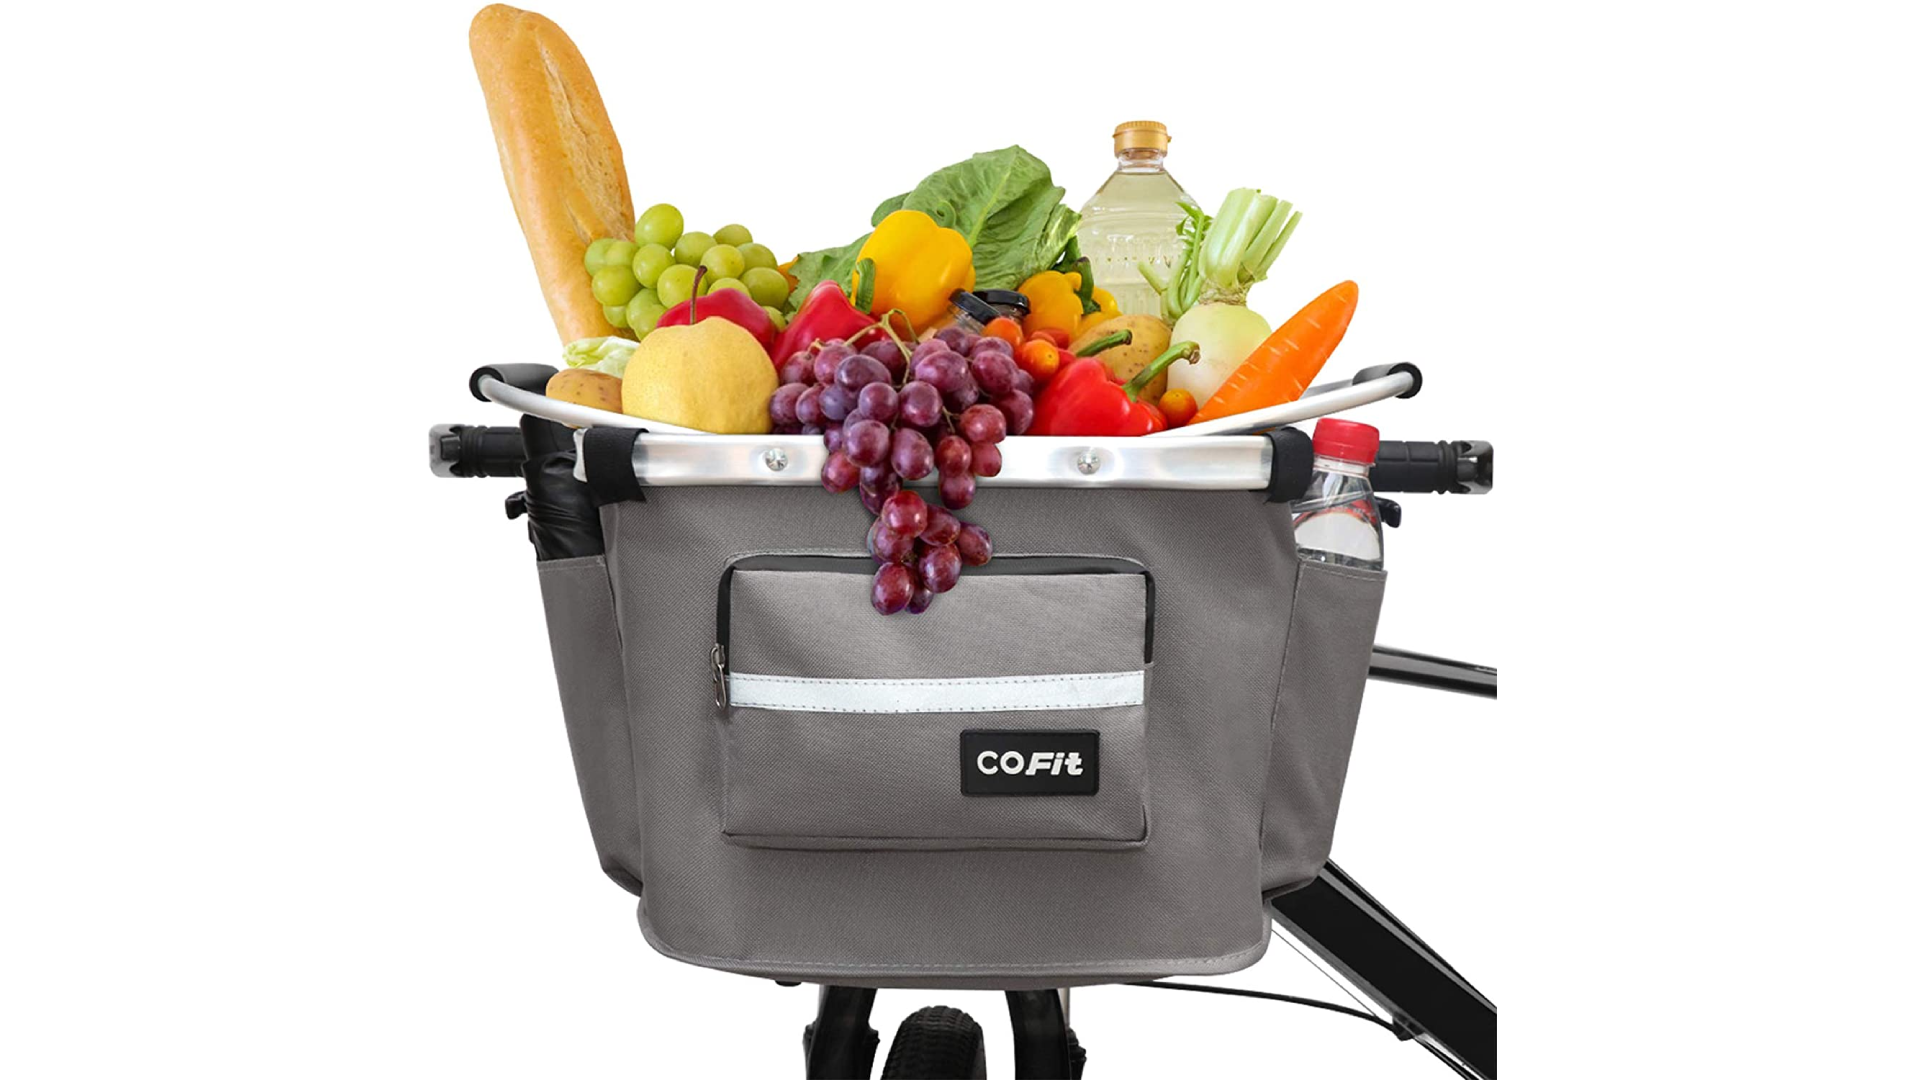 A cooler bike basket with fruits and bread inside it and a water bottle in side pocket